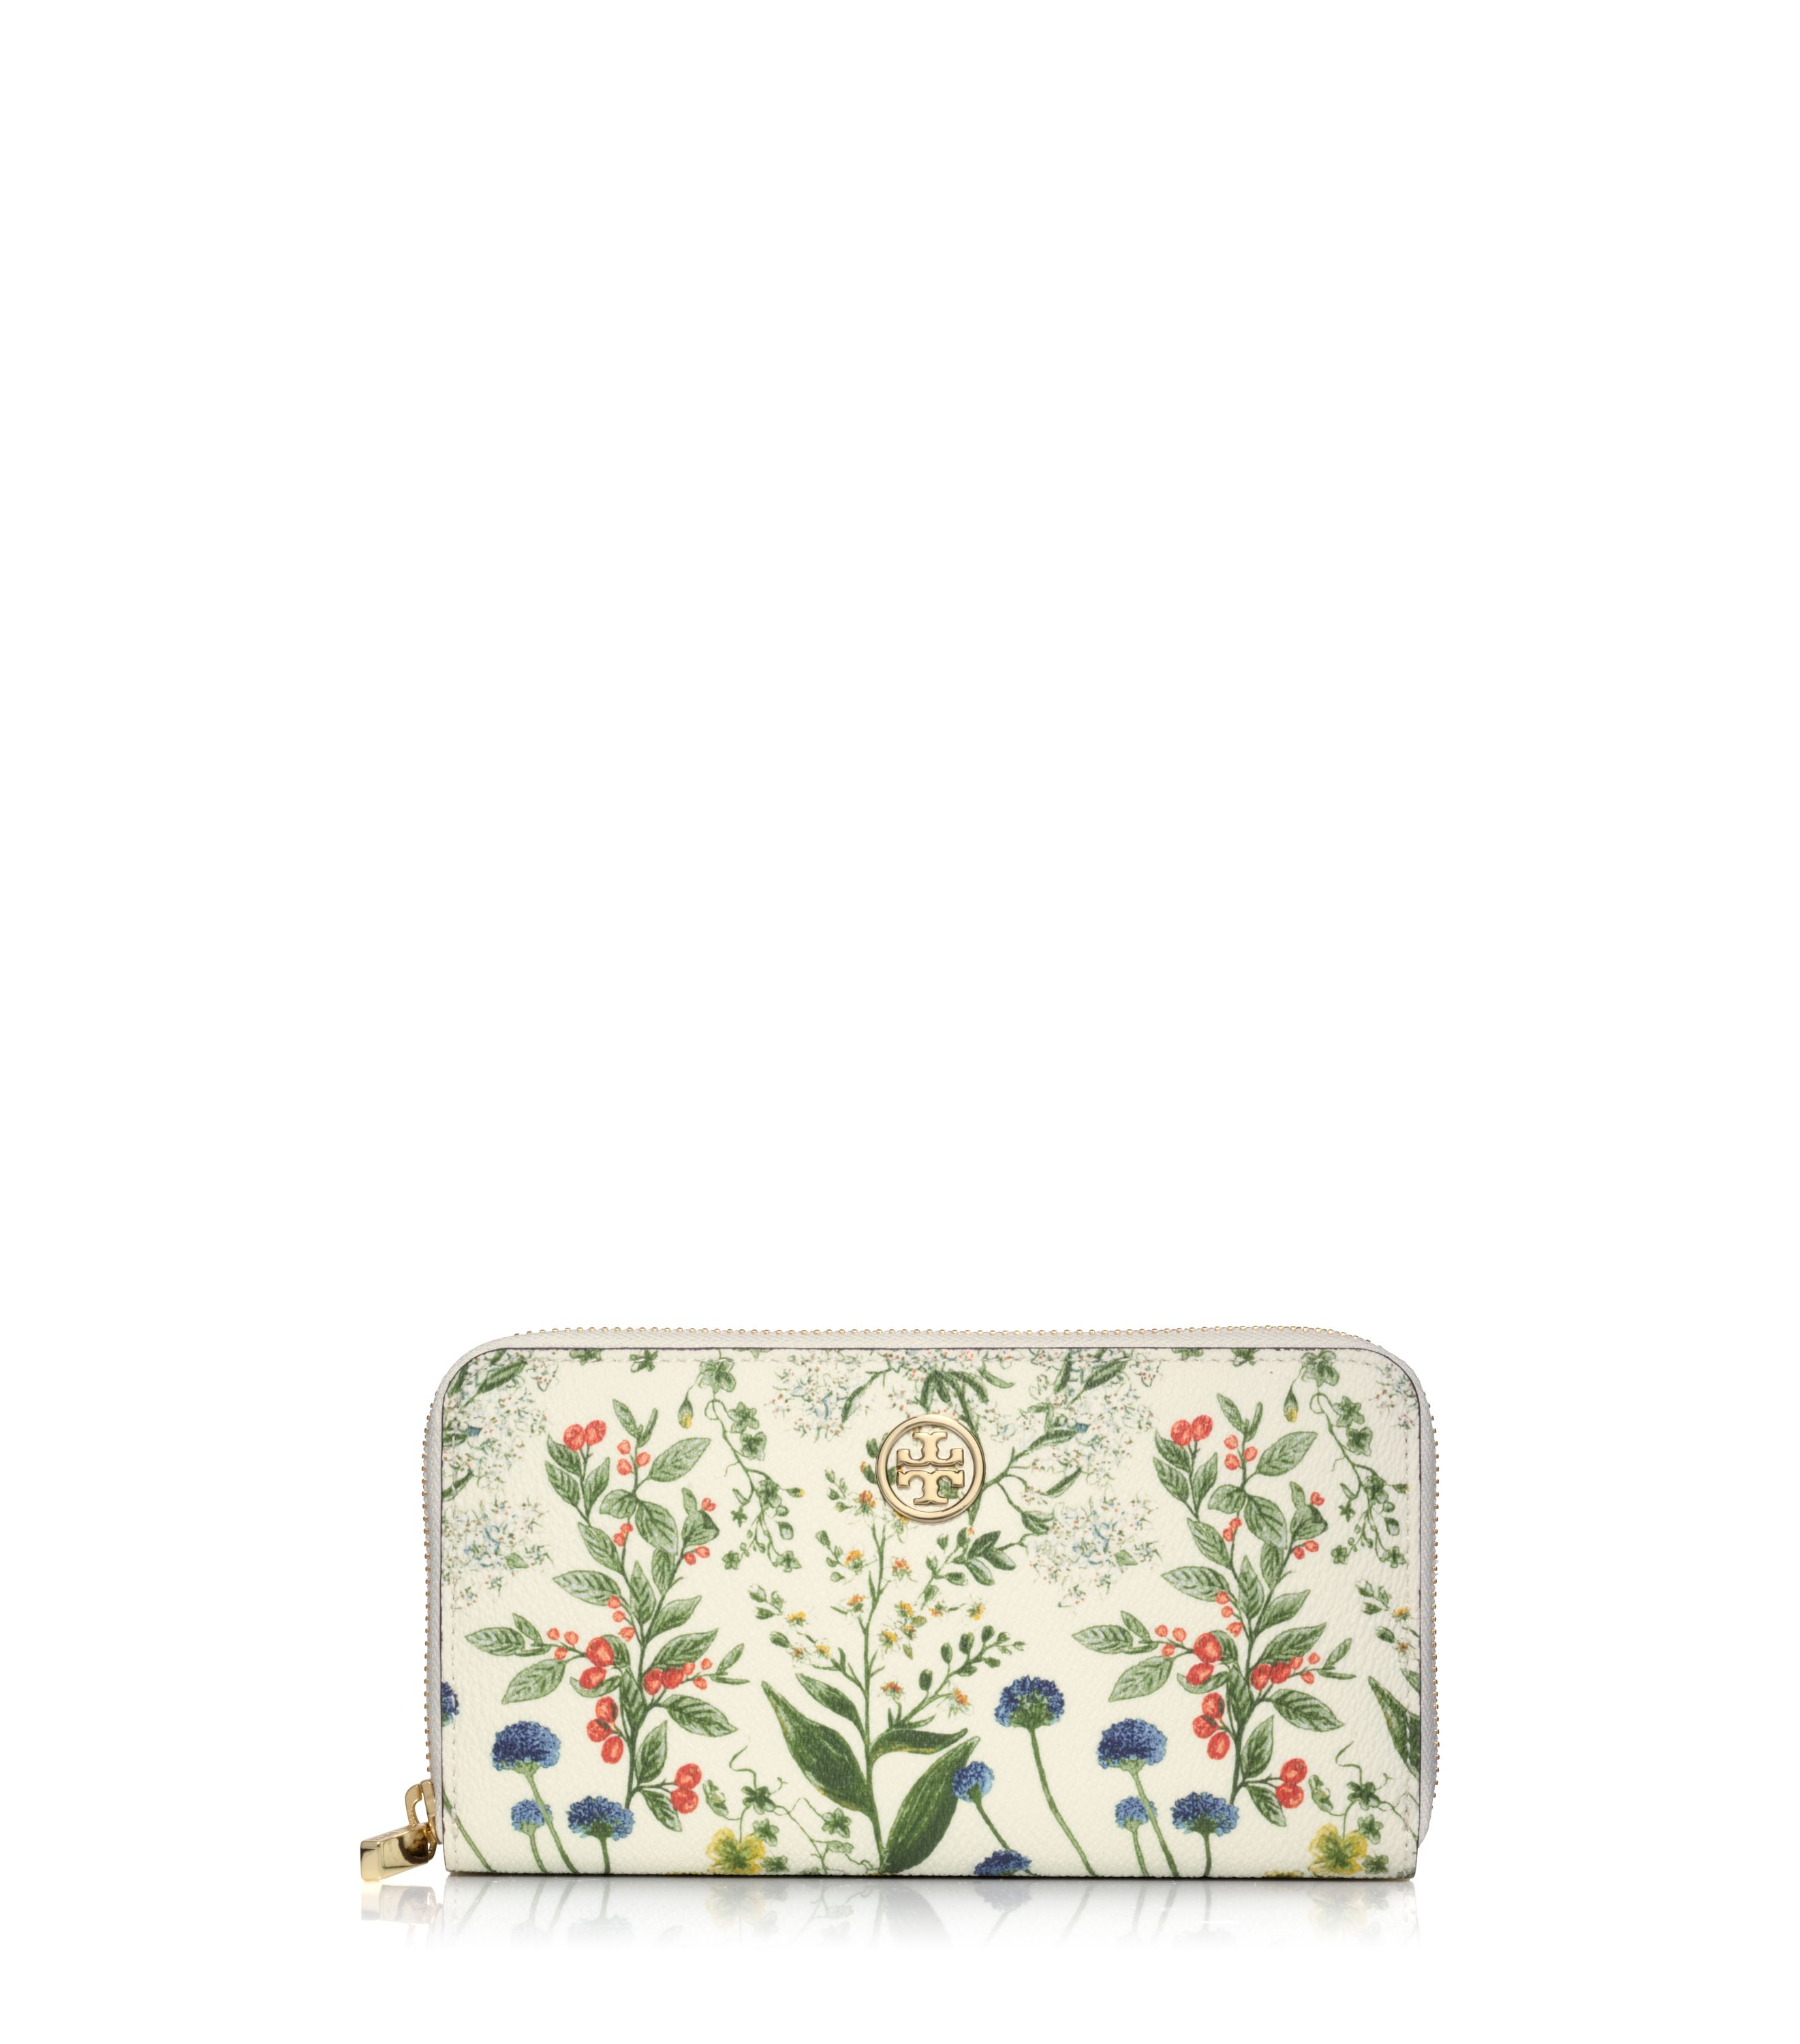 Sale alerts for Tory Burch ROBINSON PRINTED ZIP CONTINENTAL WALLET - Covvet